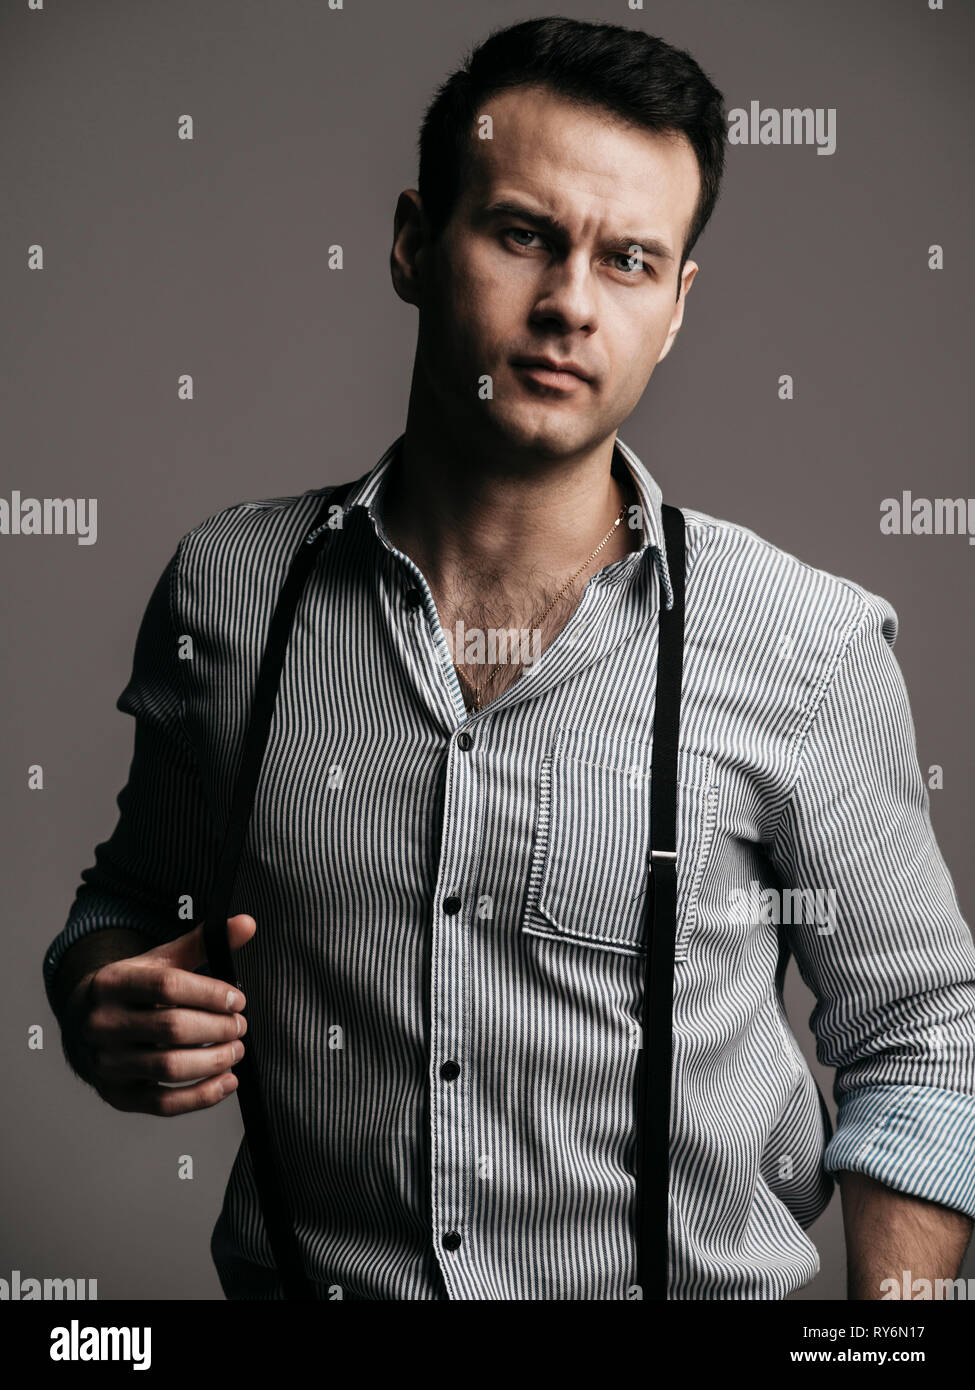 Portrait of handsome businessman wearing suspenders while standing against gray background - Stock Image